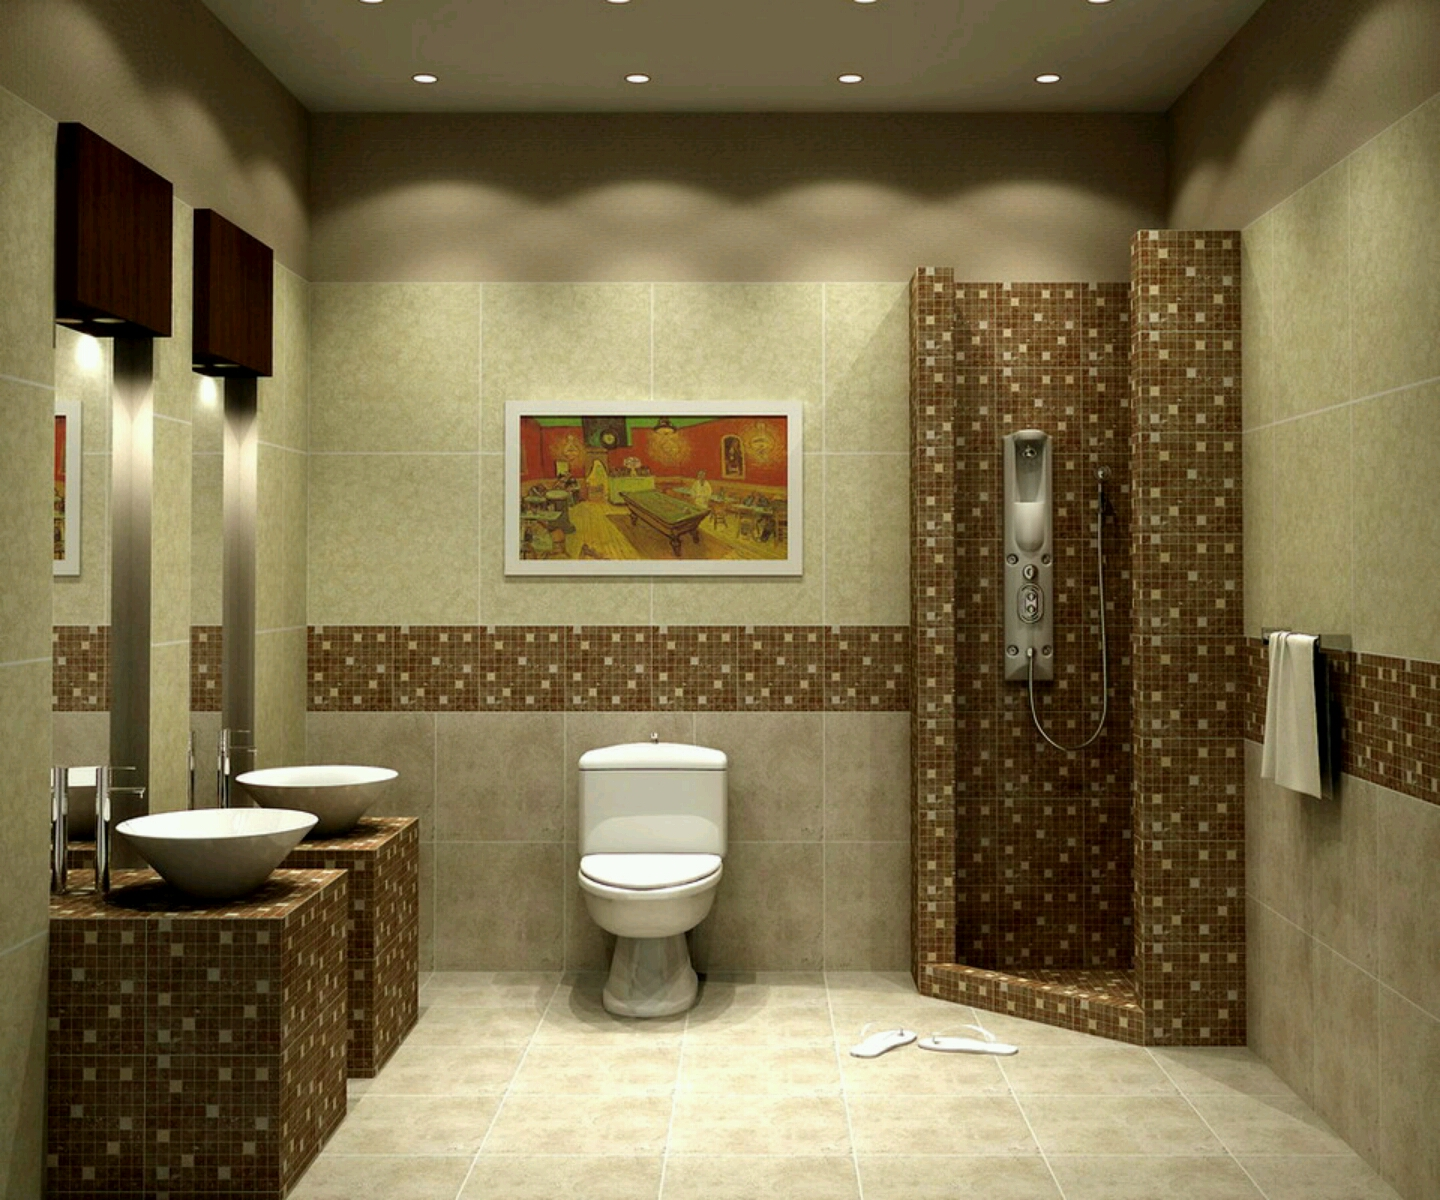 Bathroom Ideas: New Home Designs Latest.: Luxury Bathrooms Designs Ideas